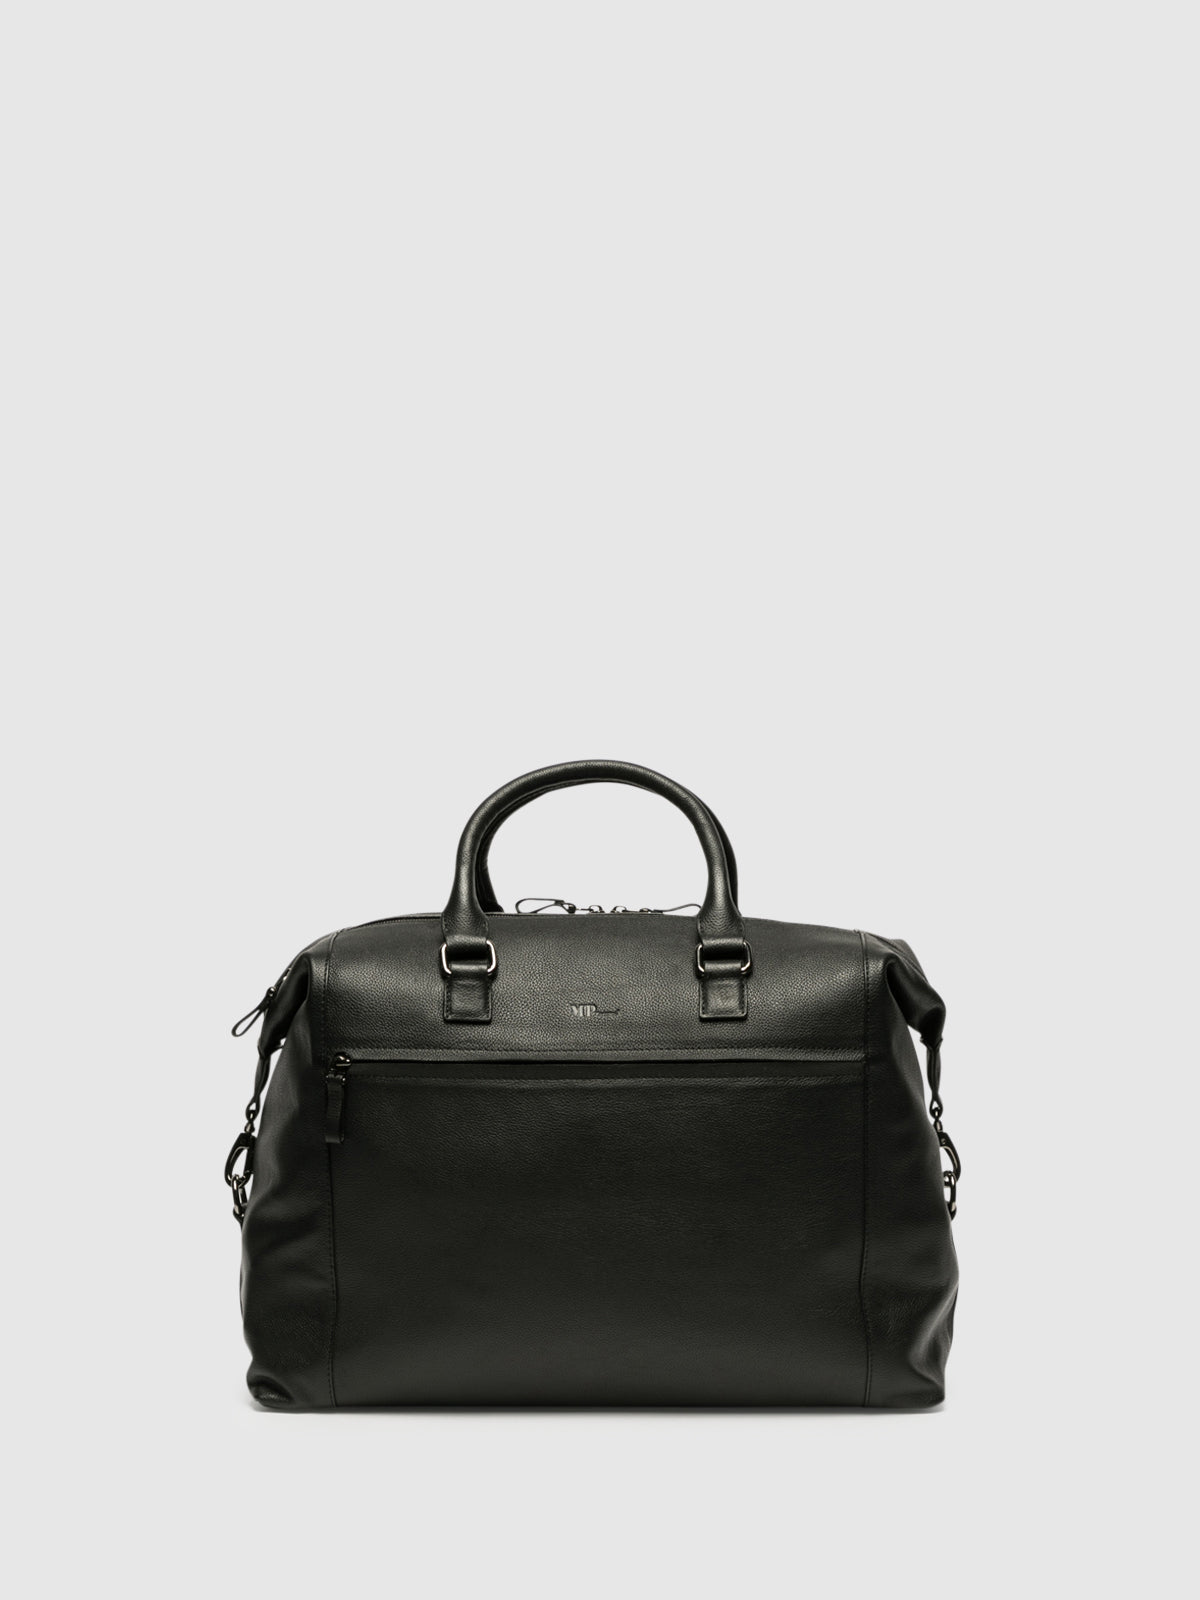 MARTA PONTI Black Weekend Bag